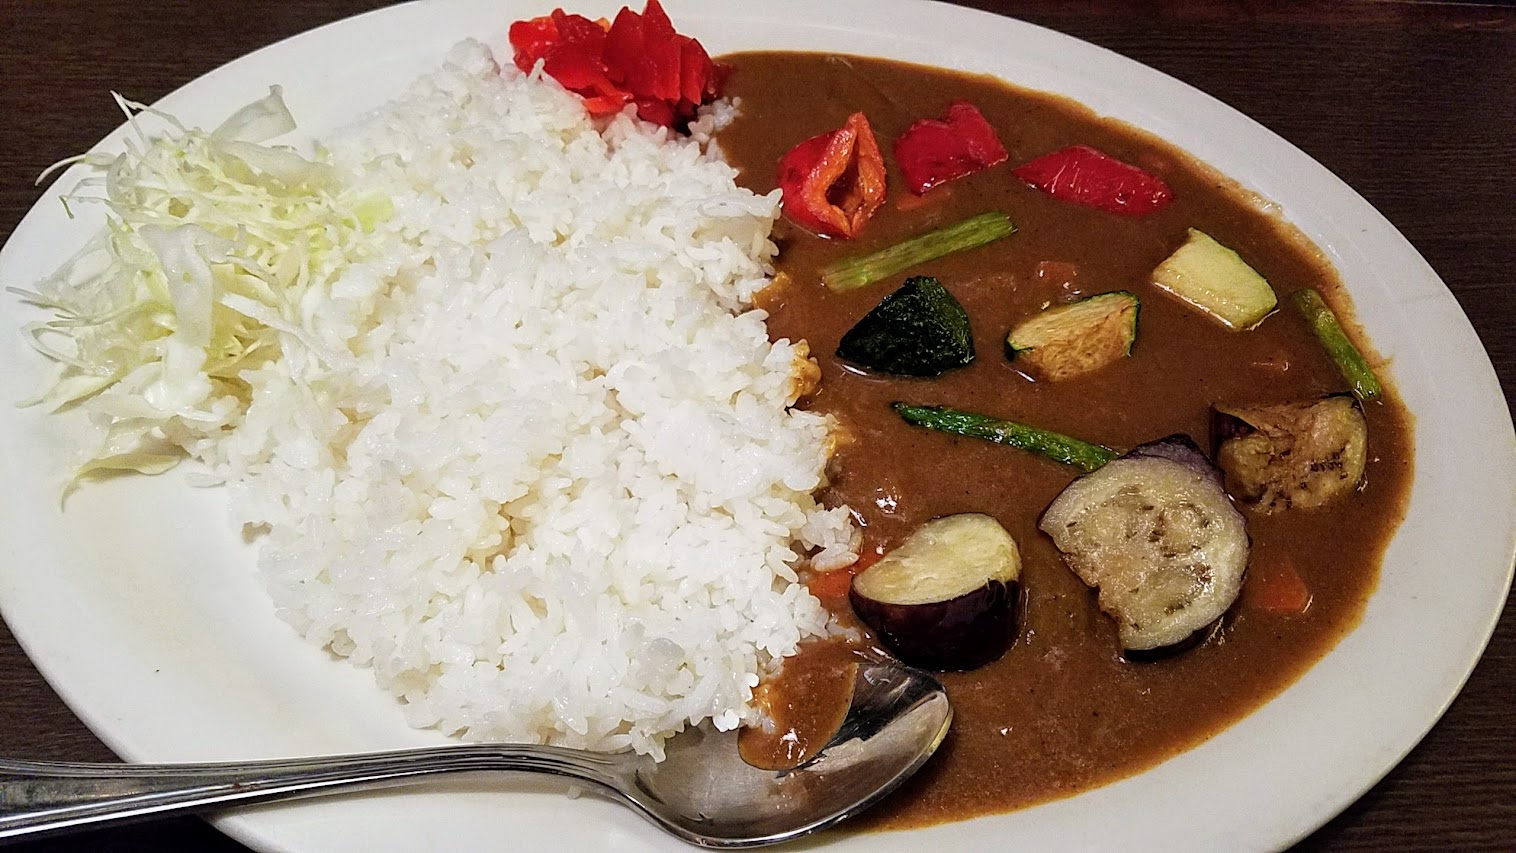 Often Japanese curries have meat, but at Shigezo they also have a Vegetable Curry that is vegan with eggplant, zucchini, bell peppers, asparagus, carrots, and onion in mild brown curry with shredded cabbage over rice.